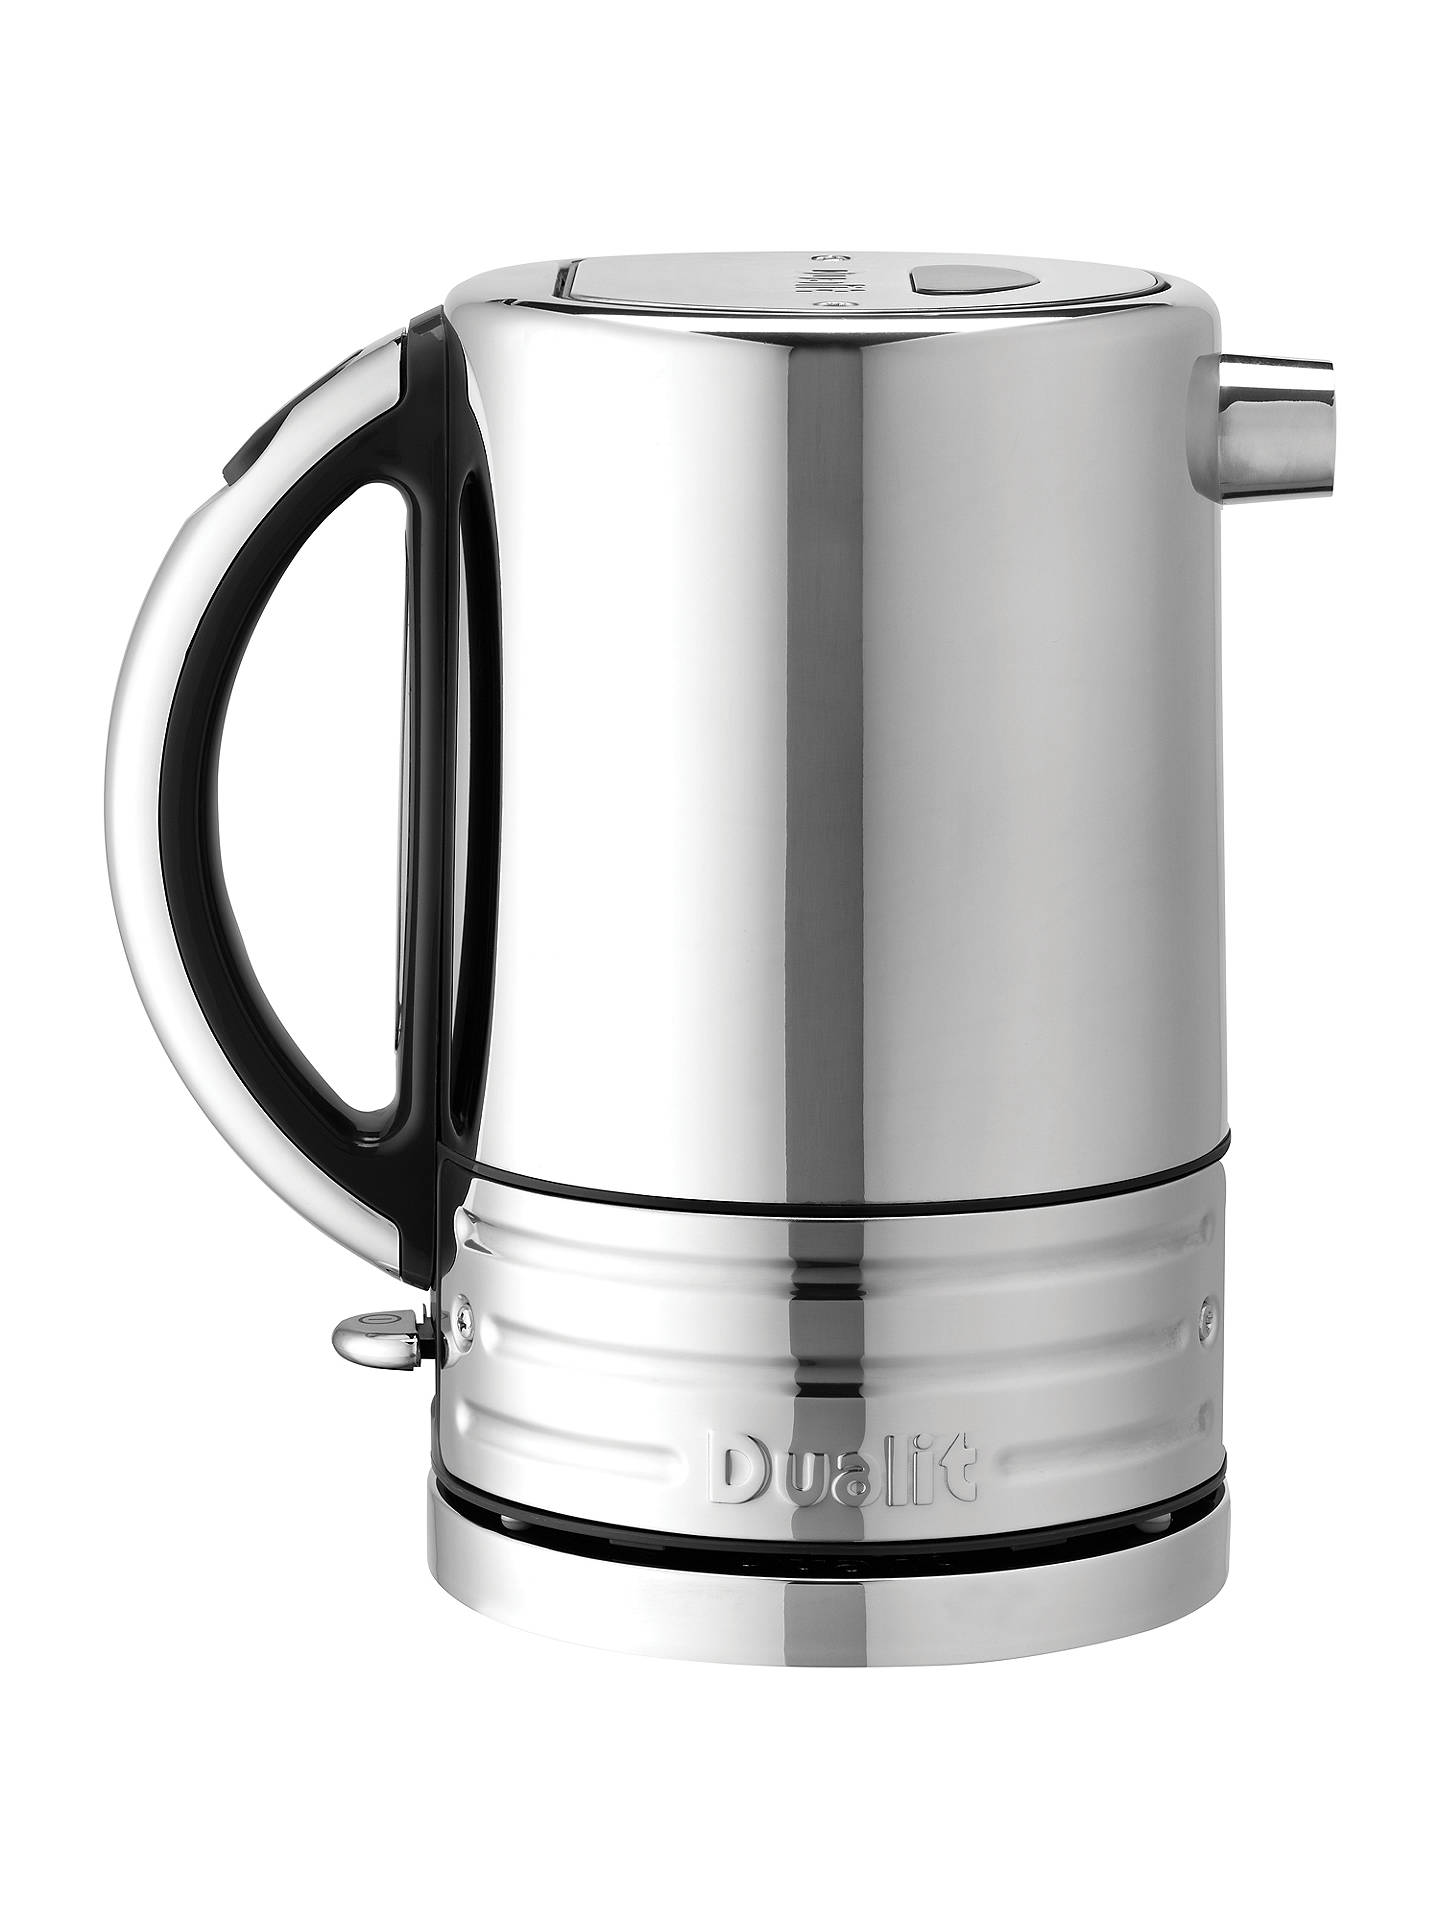 d91a2d29143d Buy Dualit 72925 Architect Kettle, Polished Steel/Black Online at  johnlewis.com ...